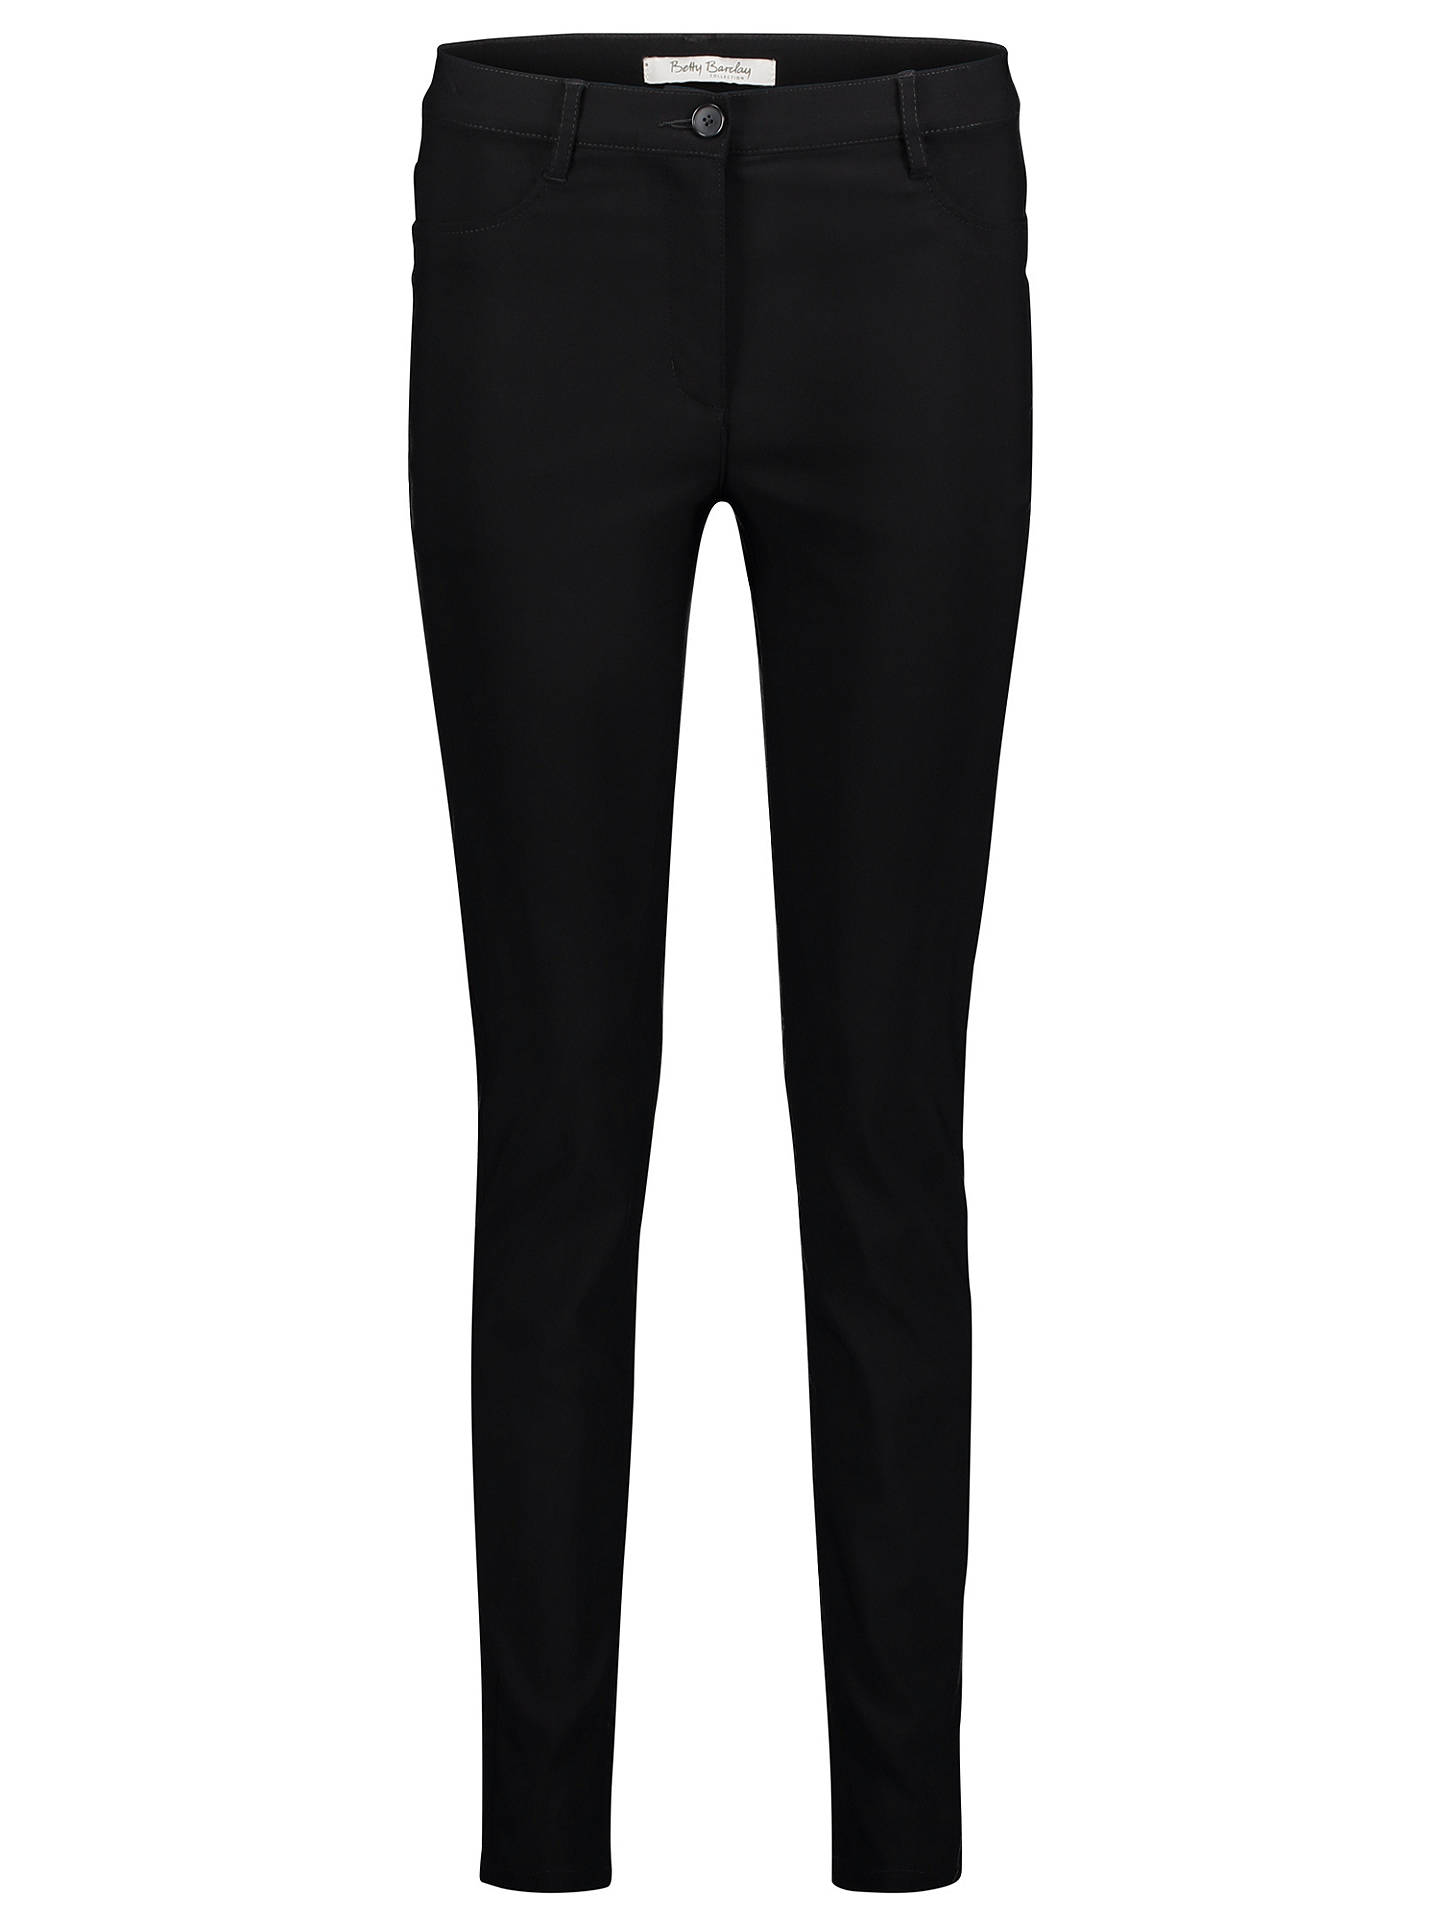 BuyBetty Barclay Two Pocket Jeans, Black, 8 Online at johnlewis.com